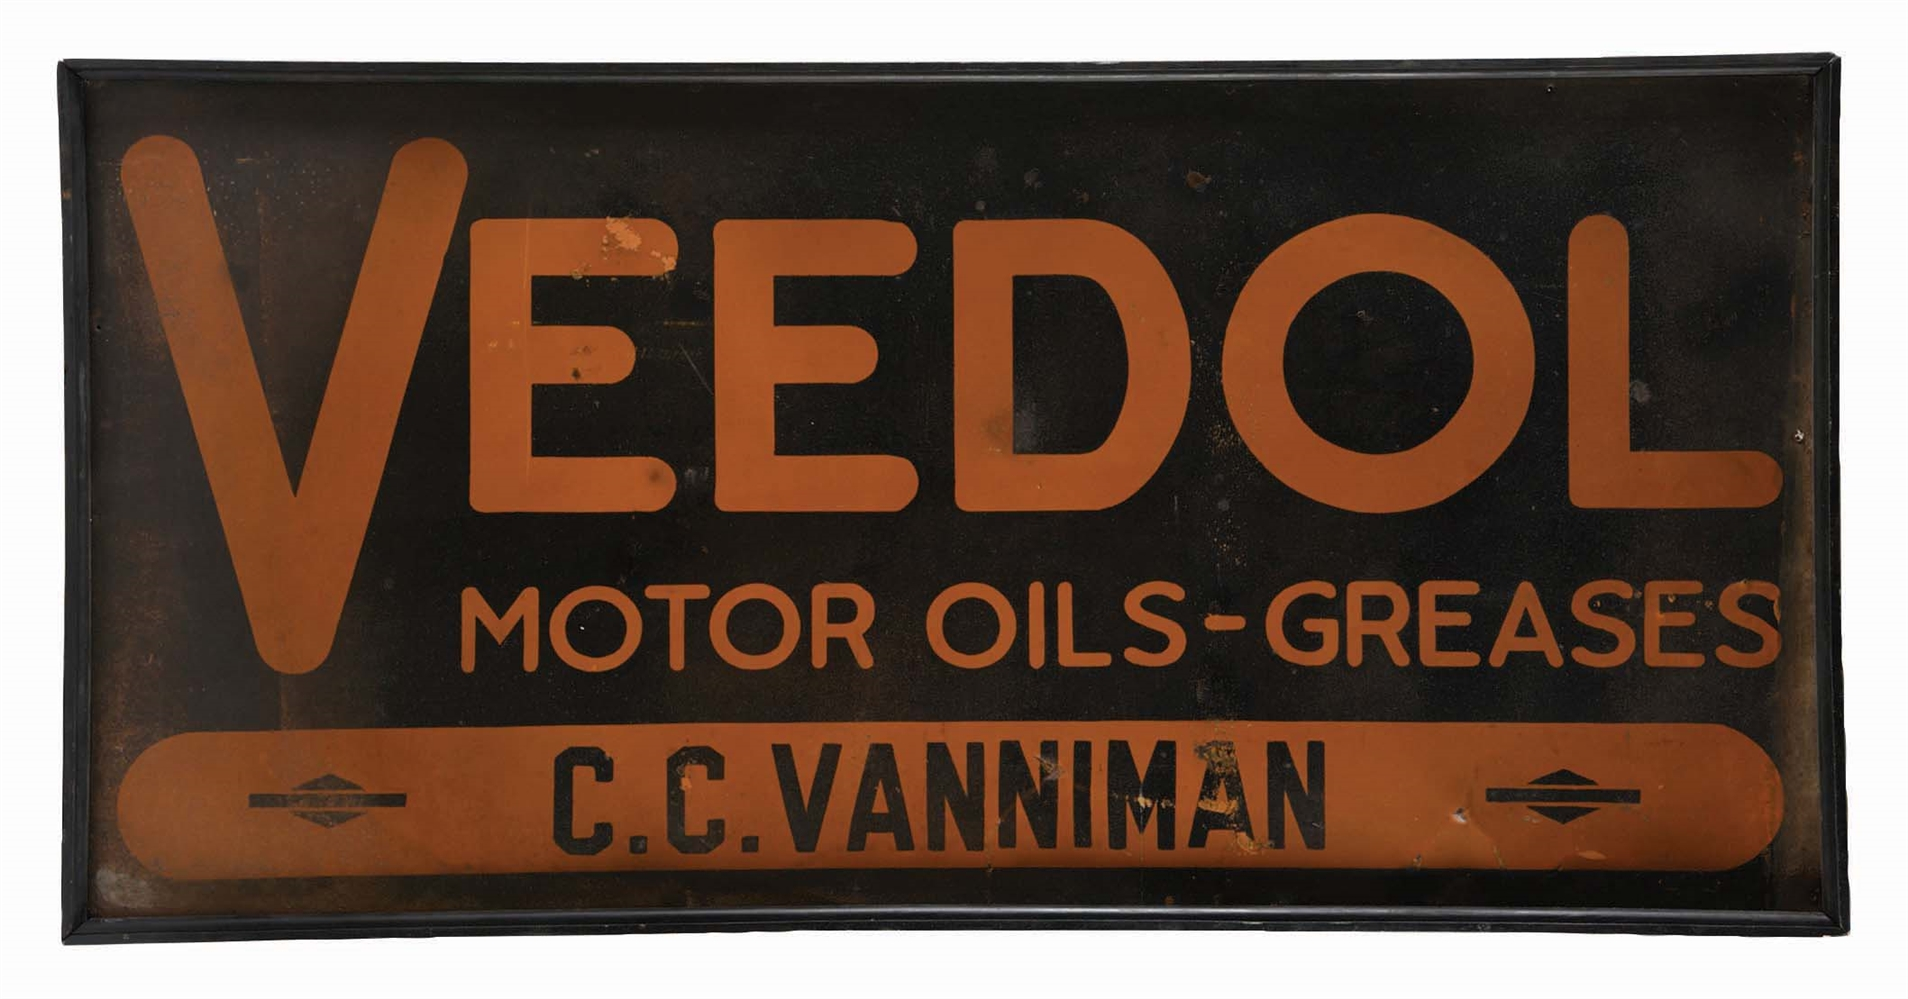 VEEDOL MOTOR OIL TIN SIGN W/ ORIGINAL WOOD FRAME.